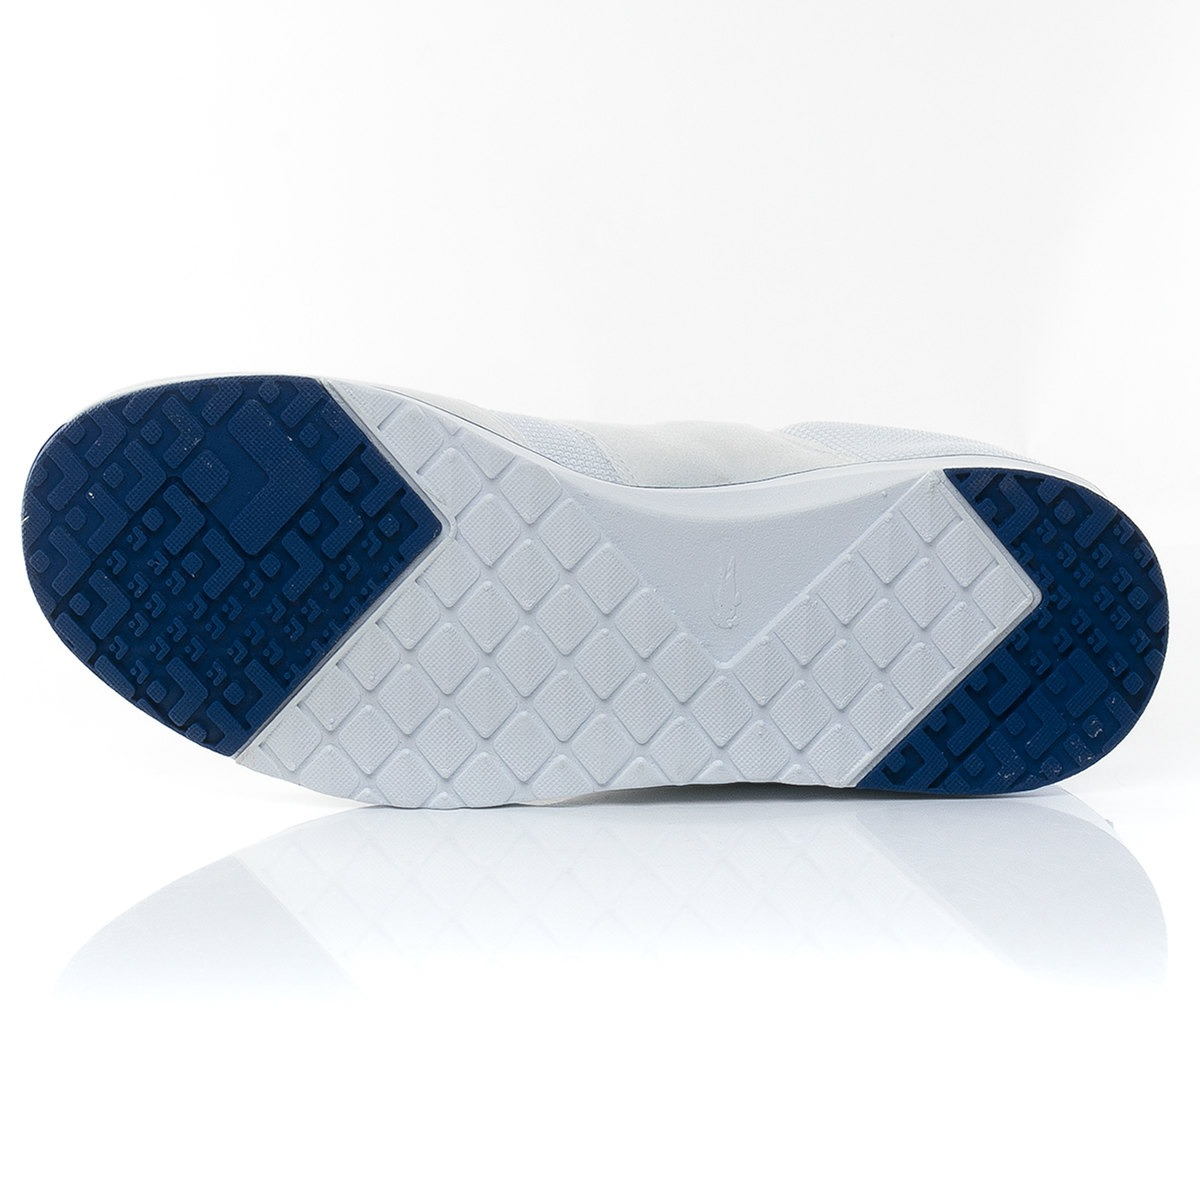 1c9bbfed30327 zapatillas light 117.1 grey lacoste sport 78. Cargando zoom.